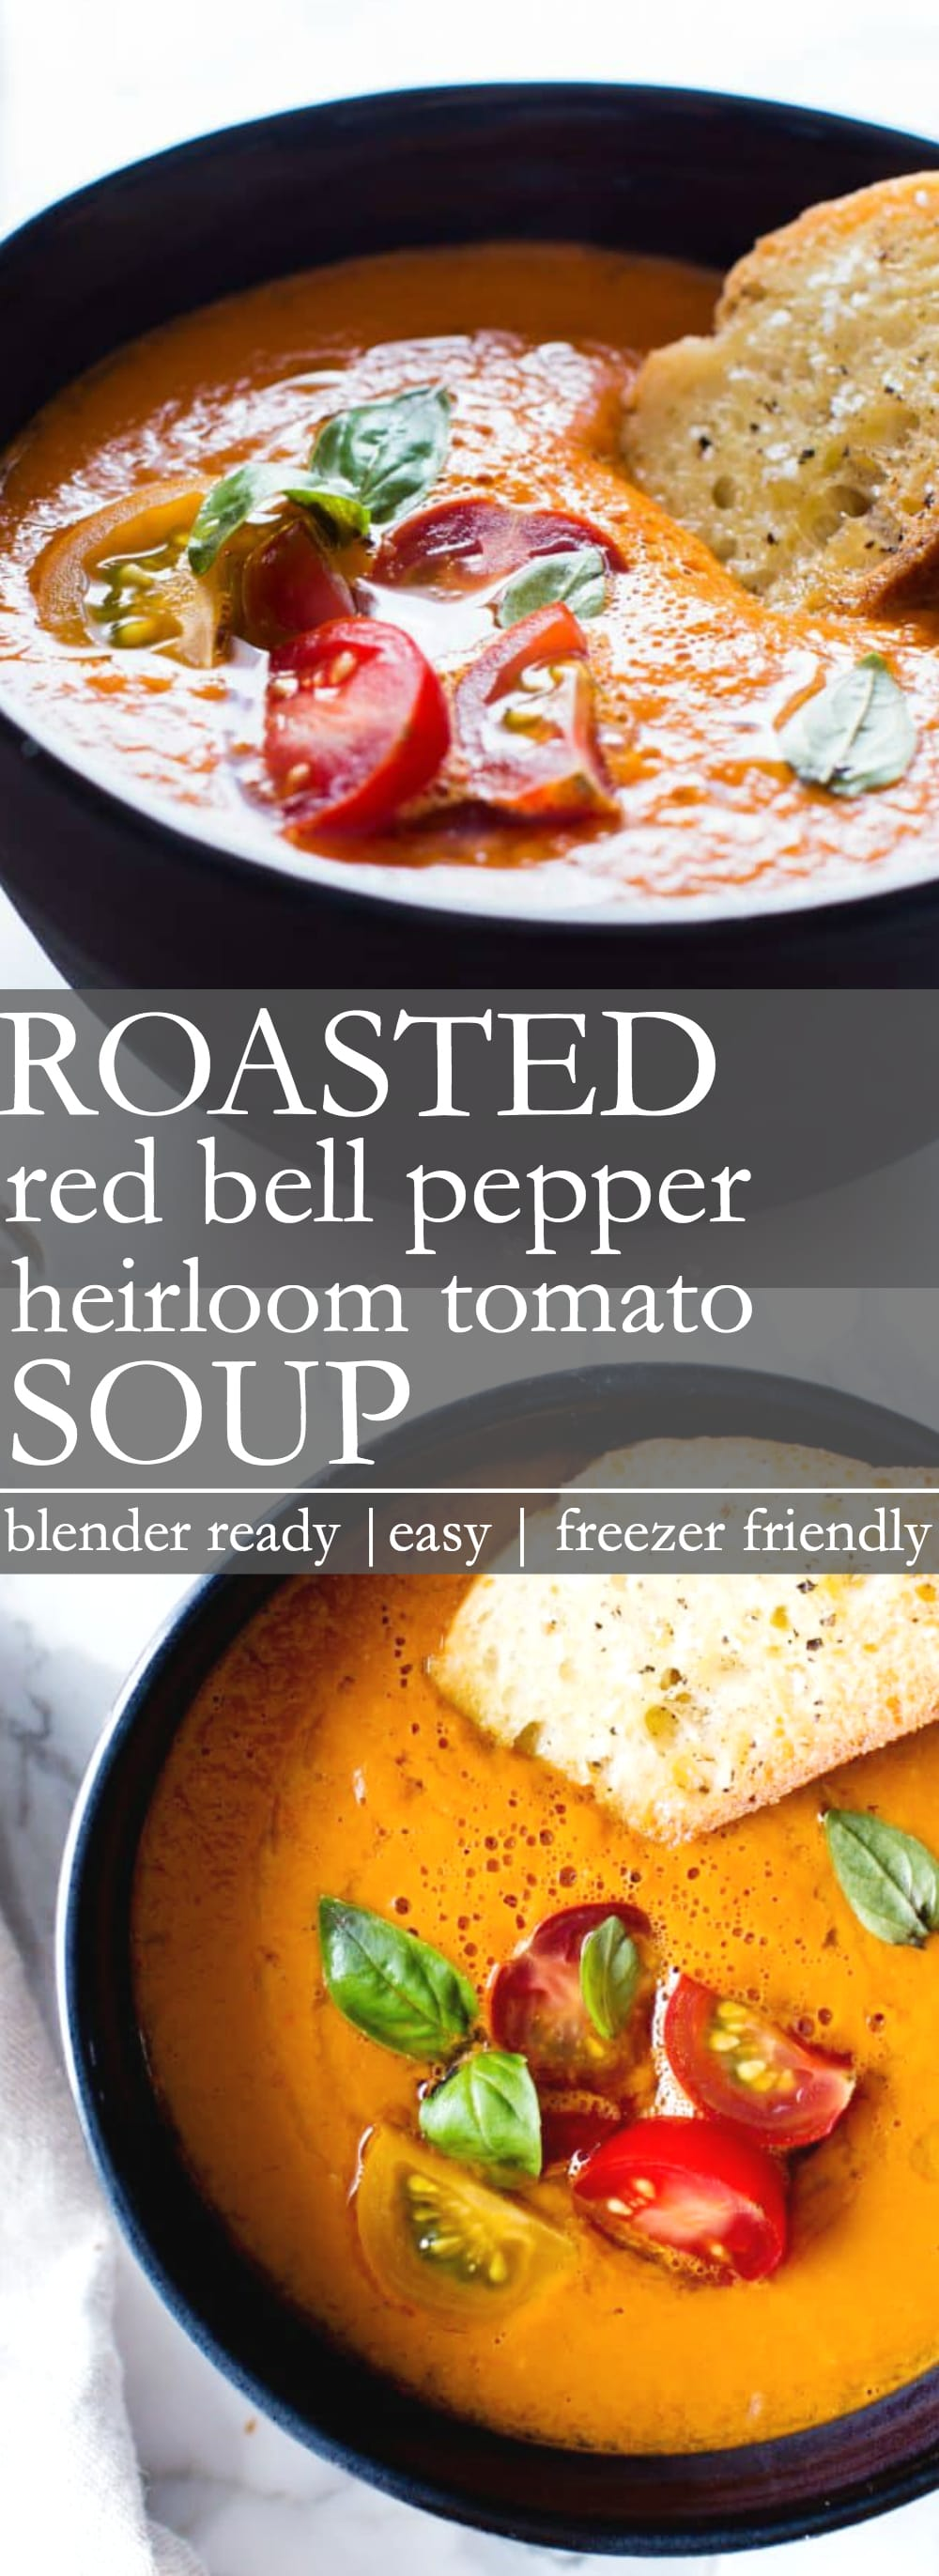 Roasted Red Bell Pepper and Heirloom Tomato Soup  Hearty easy and rich no cream with just 5 ingredients in this creamy Roasted Red Bell Pepper and Heirloom Tomato Soup Fr...